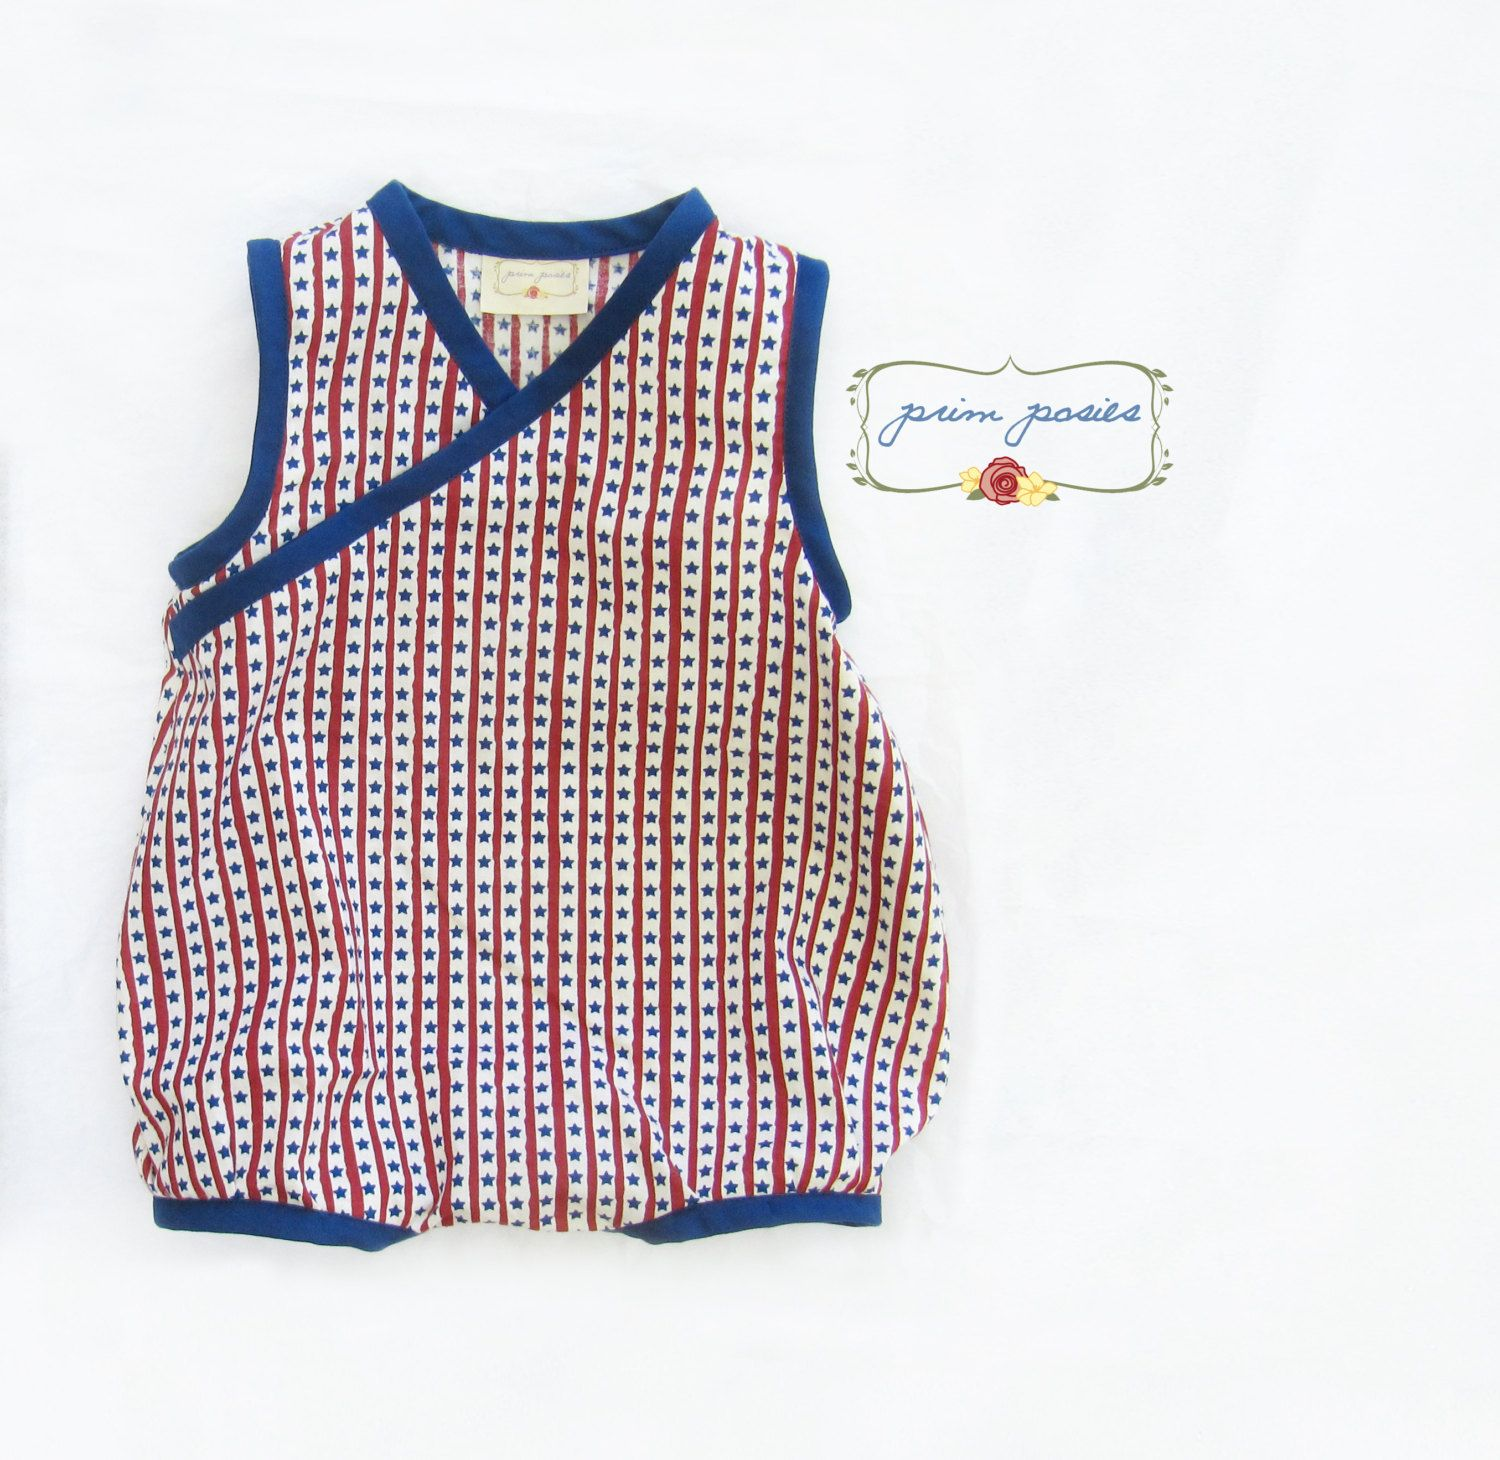 4th of July Outfit Baby Boy Romper Boy Baby Clothes July 4th